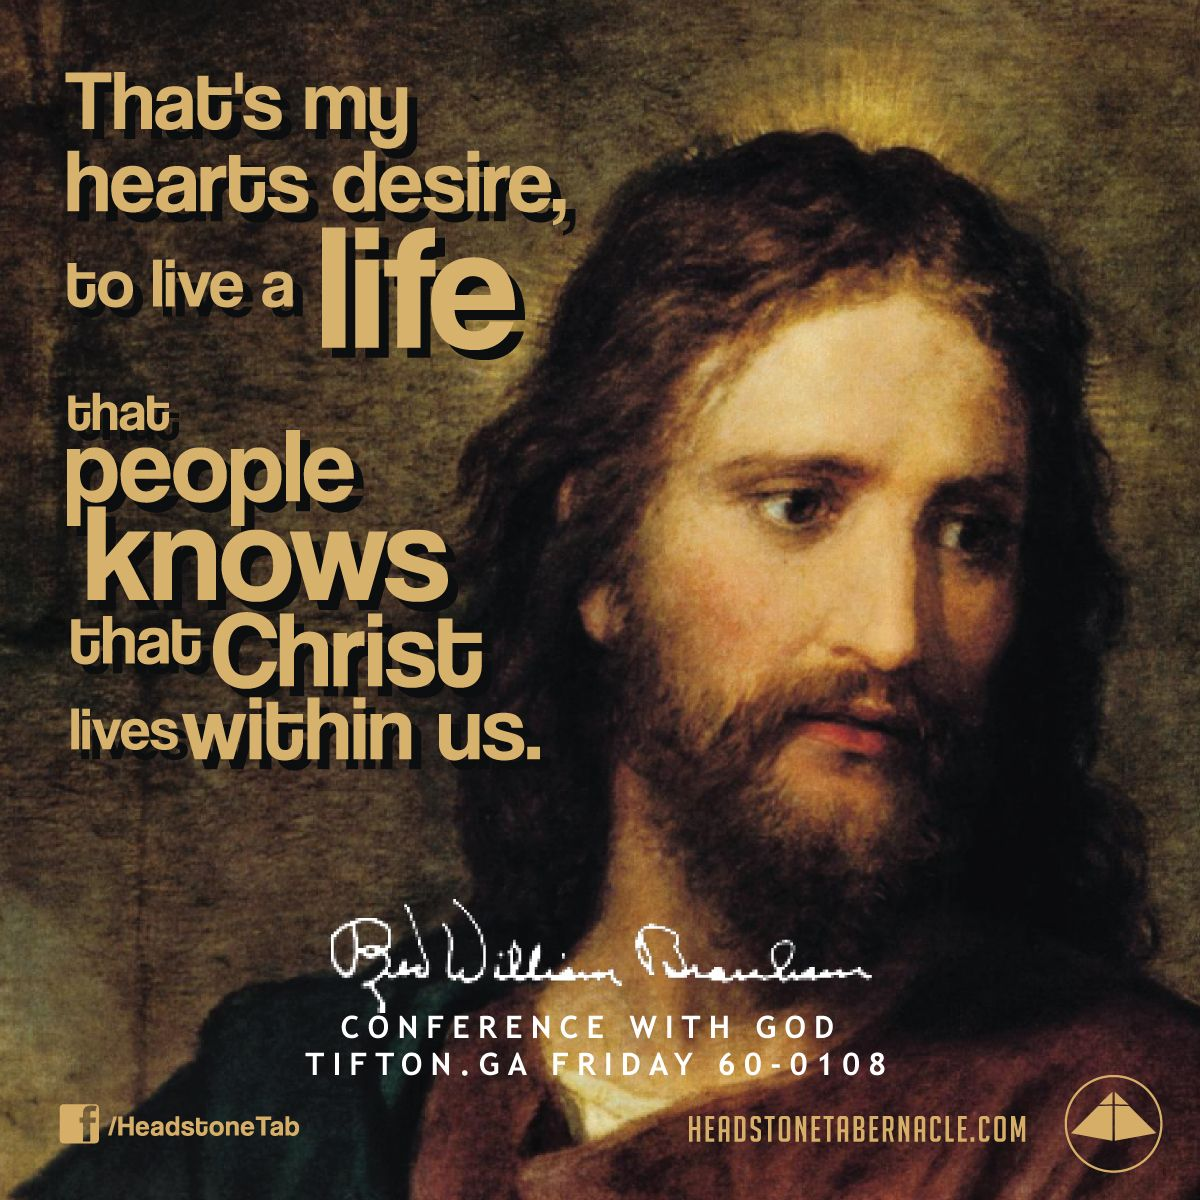 That's my hearts desire, to live a life that people knows that Christ lives within us. Image Quote from: CONFERENCE WITH GOD TIFTON GA FRIDAY 60-0108 - Rev. William Marrion Branham